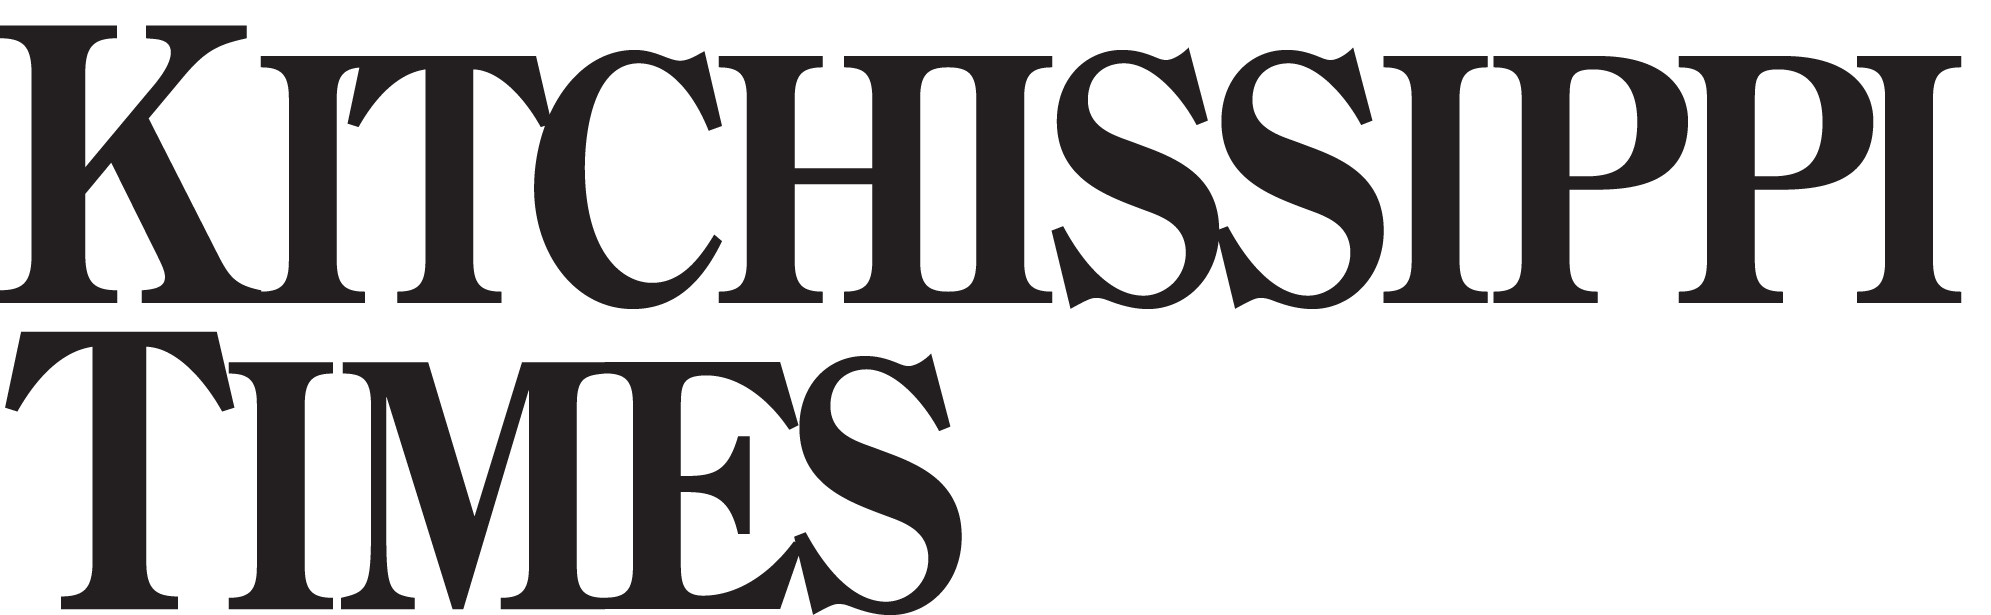 KITCHISSIPPI TIMES LOGO_2018.png